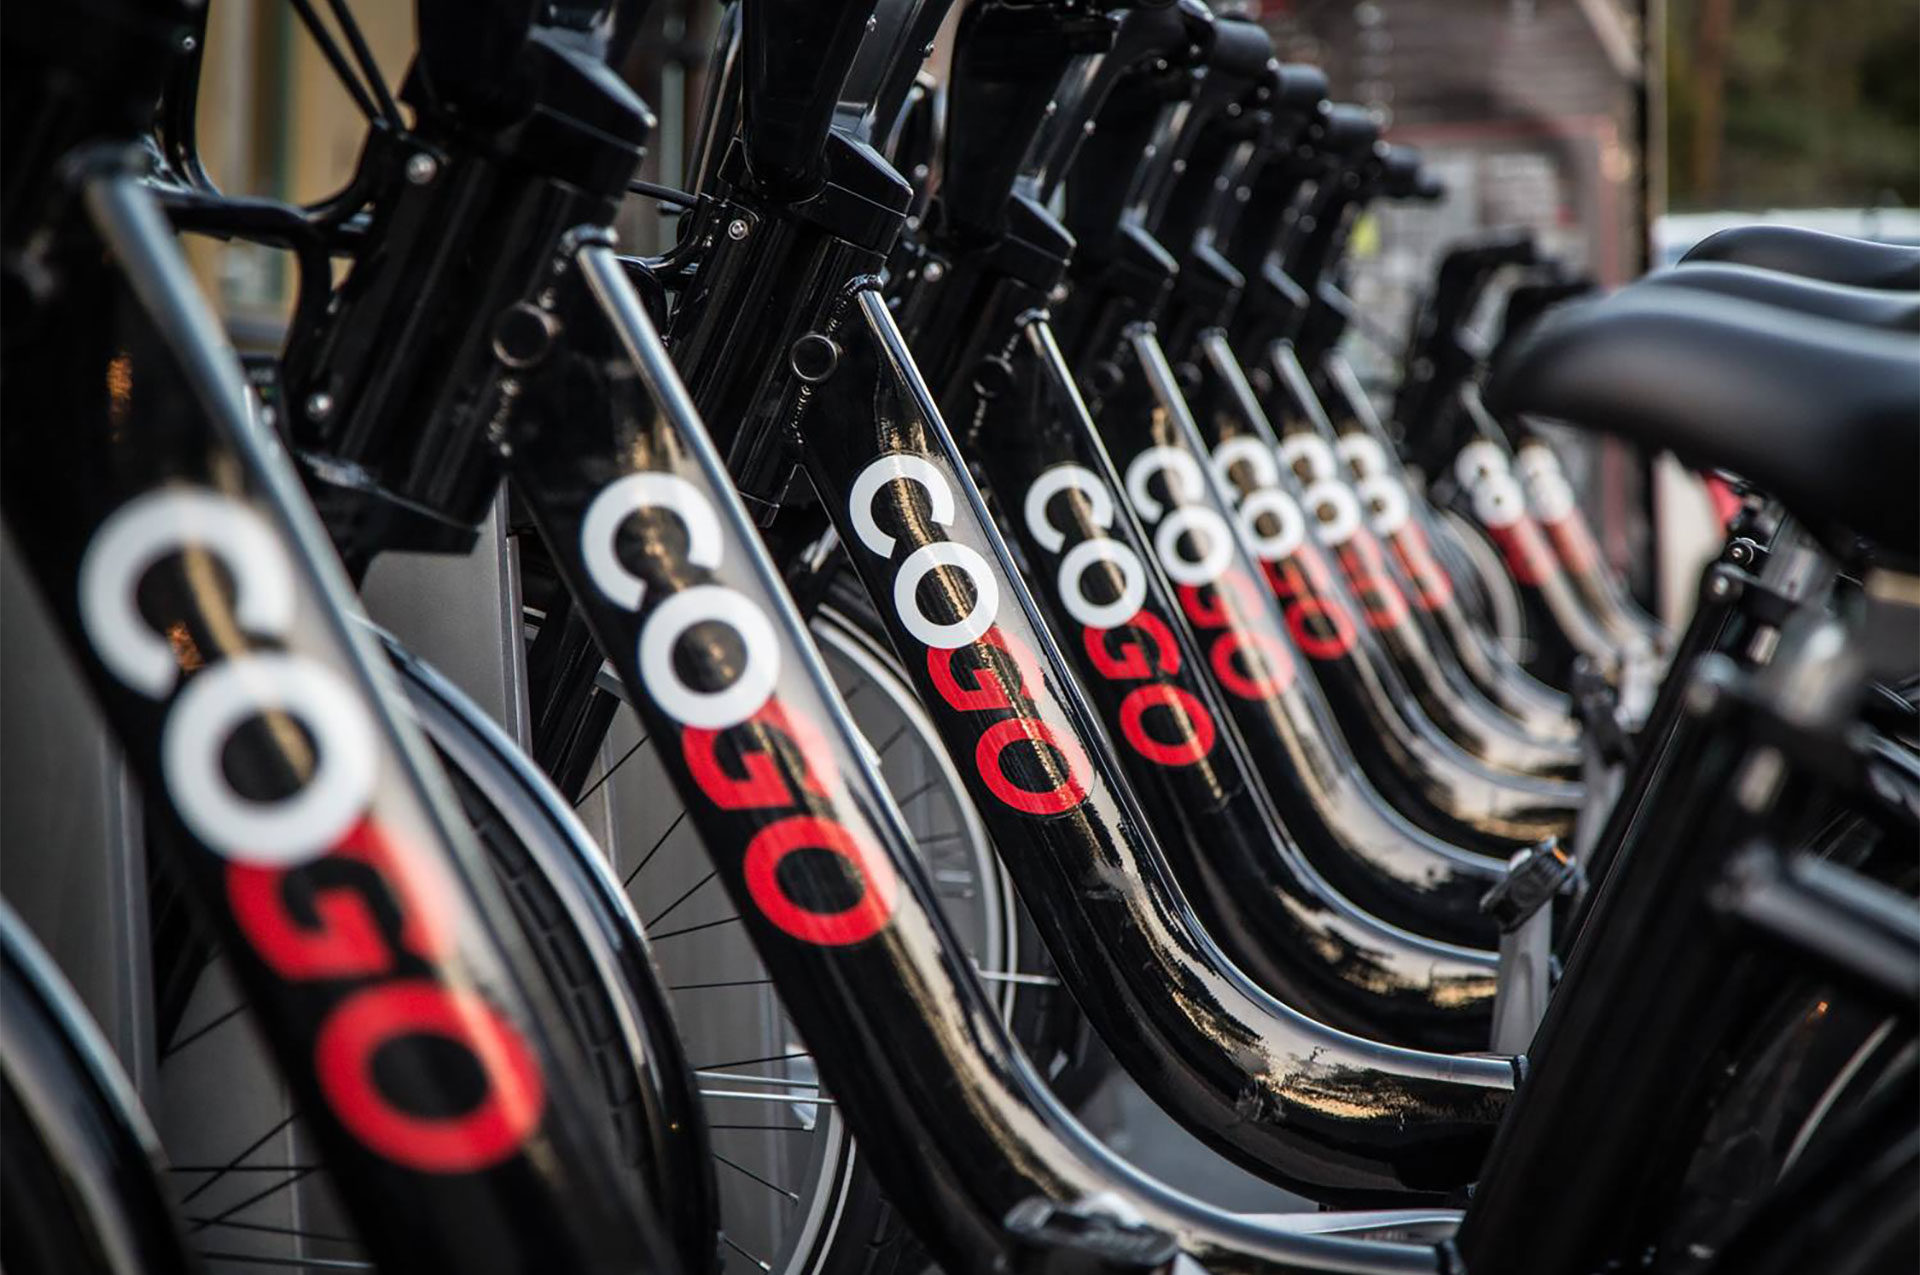 CoGo Bike Stations To Receive Upgrades